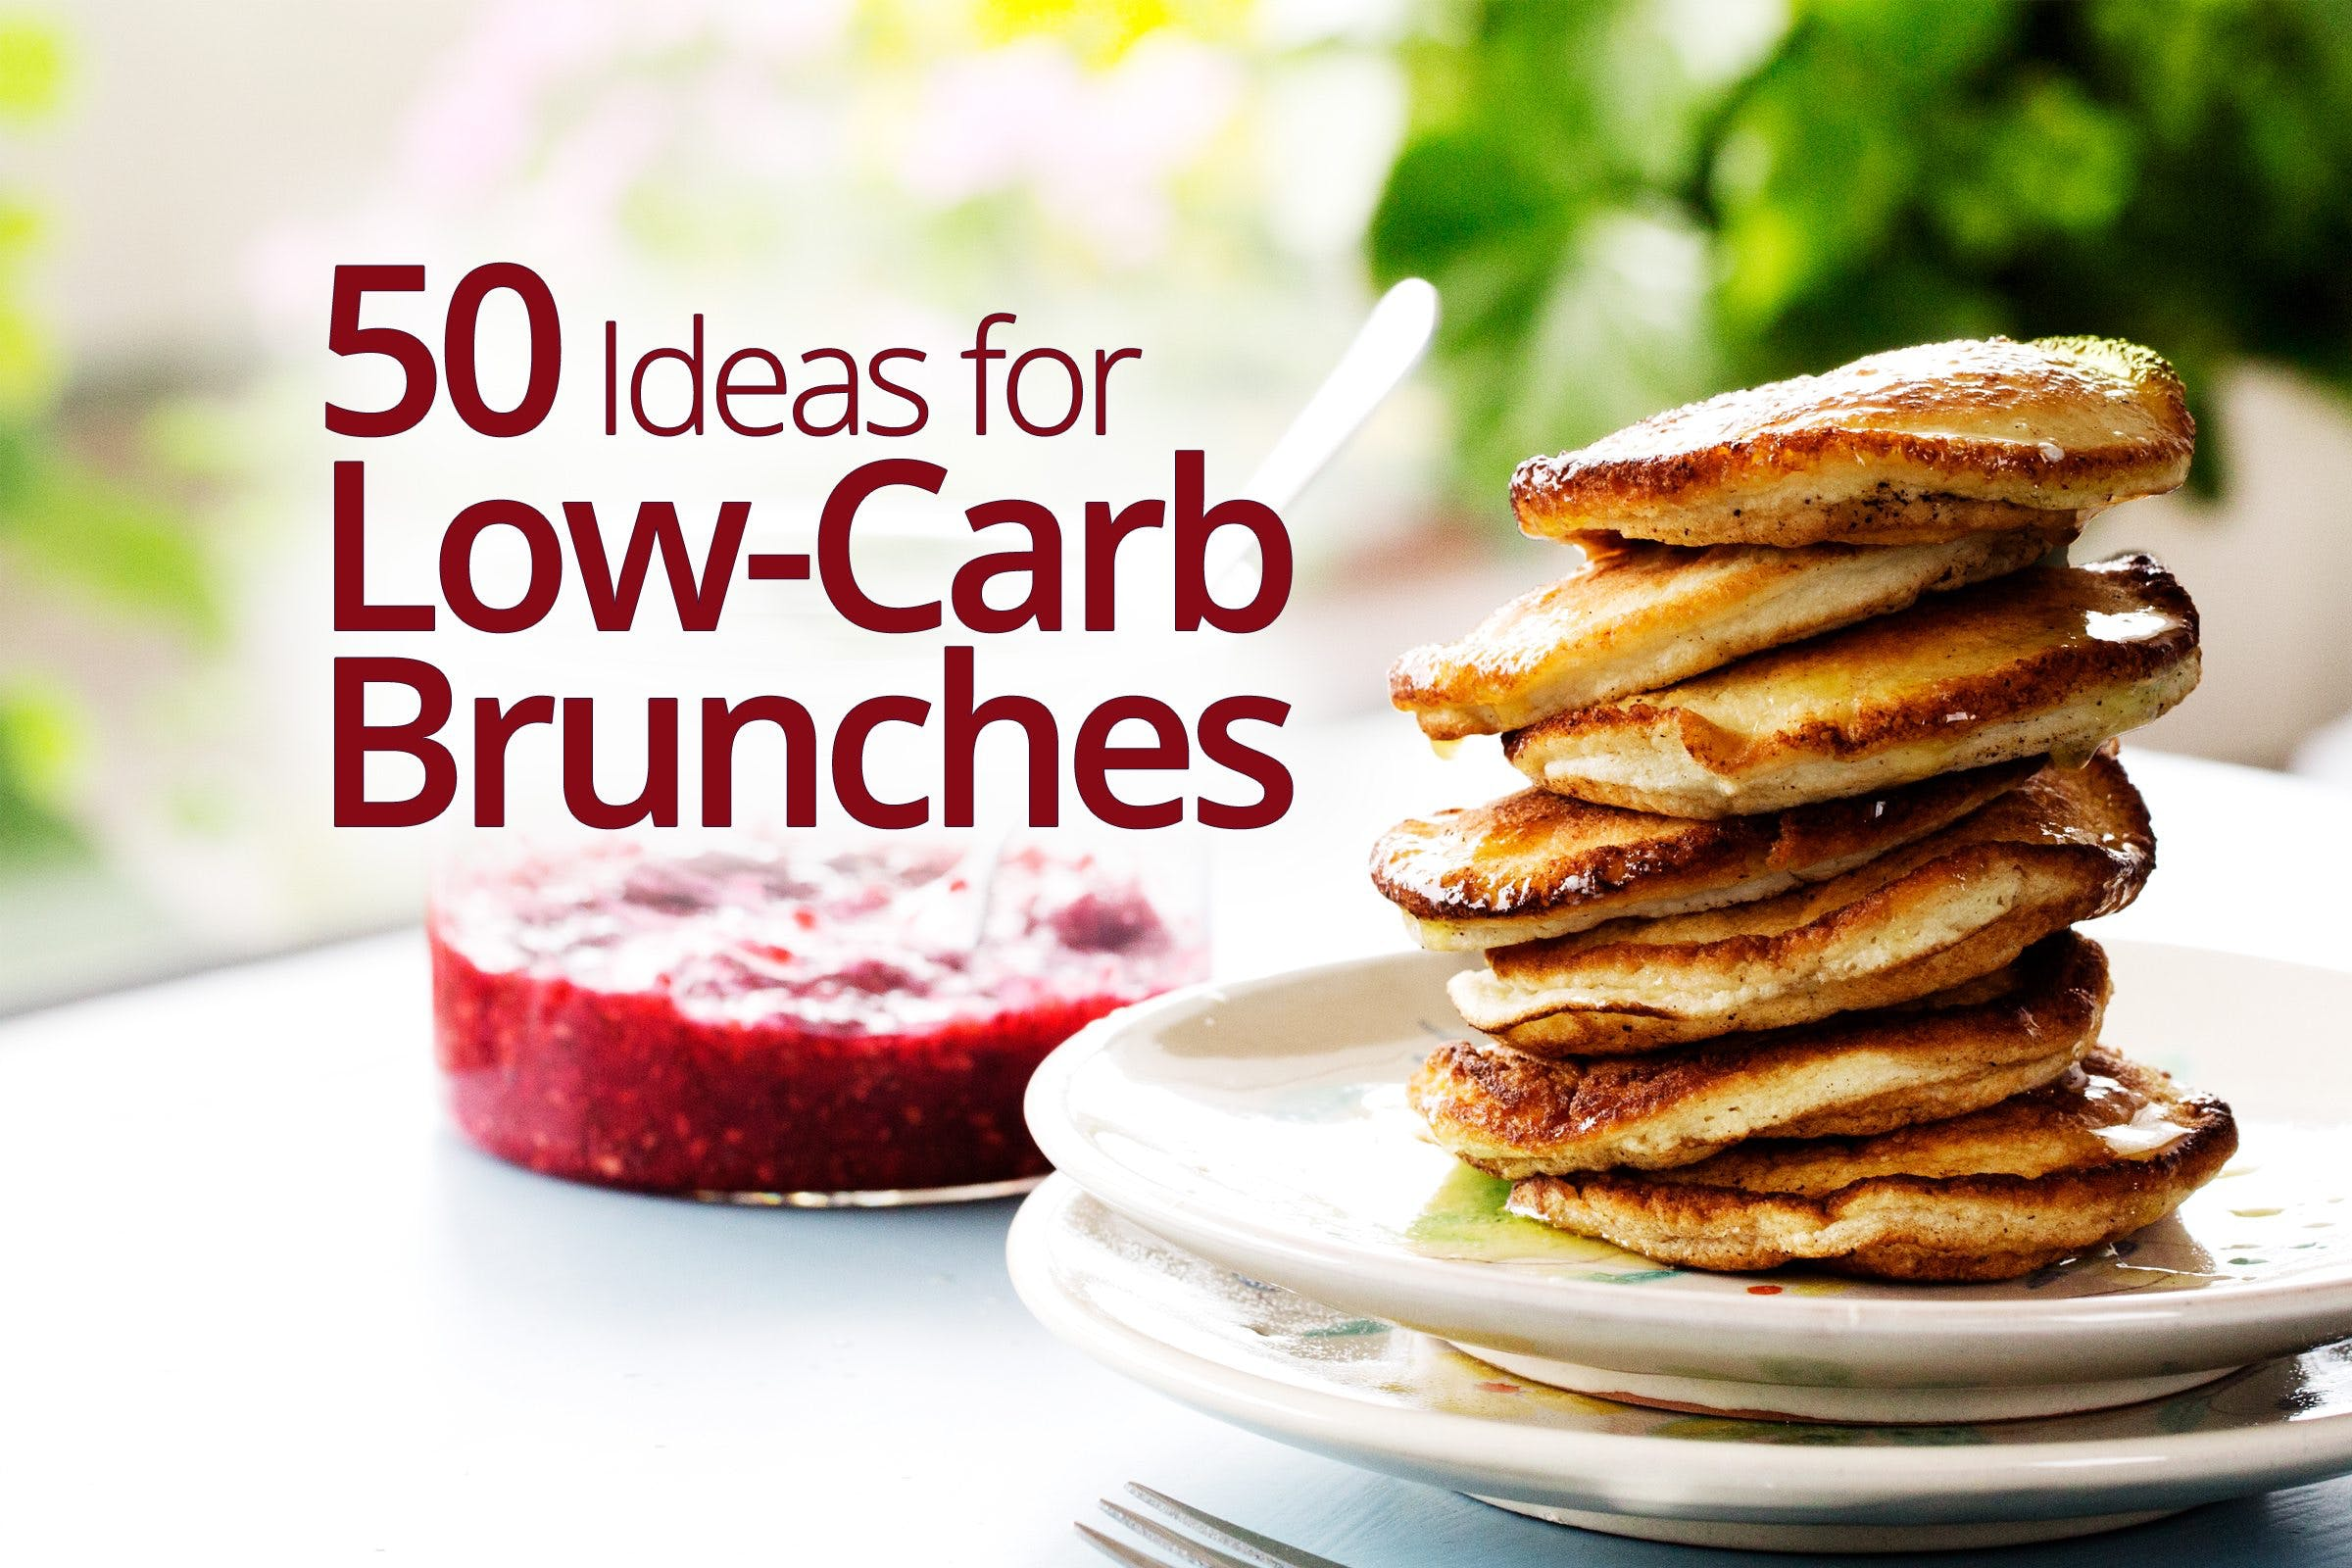 Fifty great ideas for low-carb and keto brunches